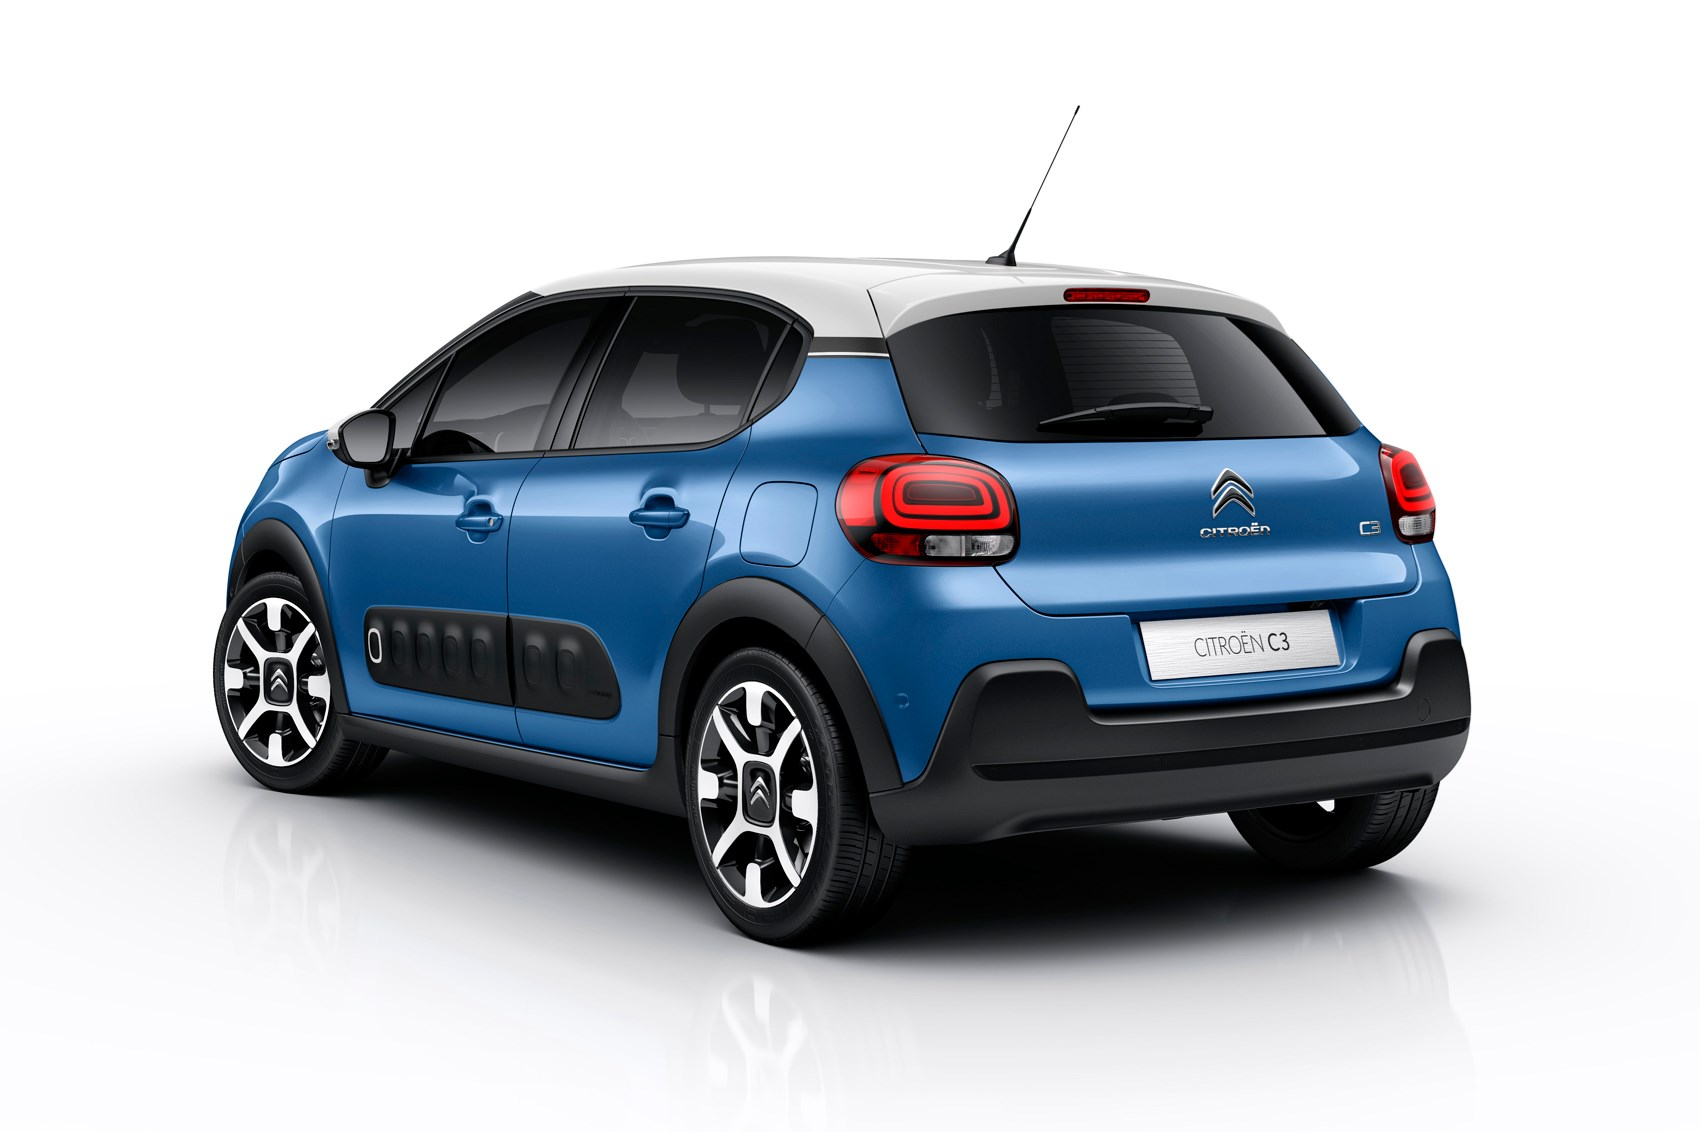 New 2017 Citroen C3 revealed: it's Cactus take 2 | CAR ...